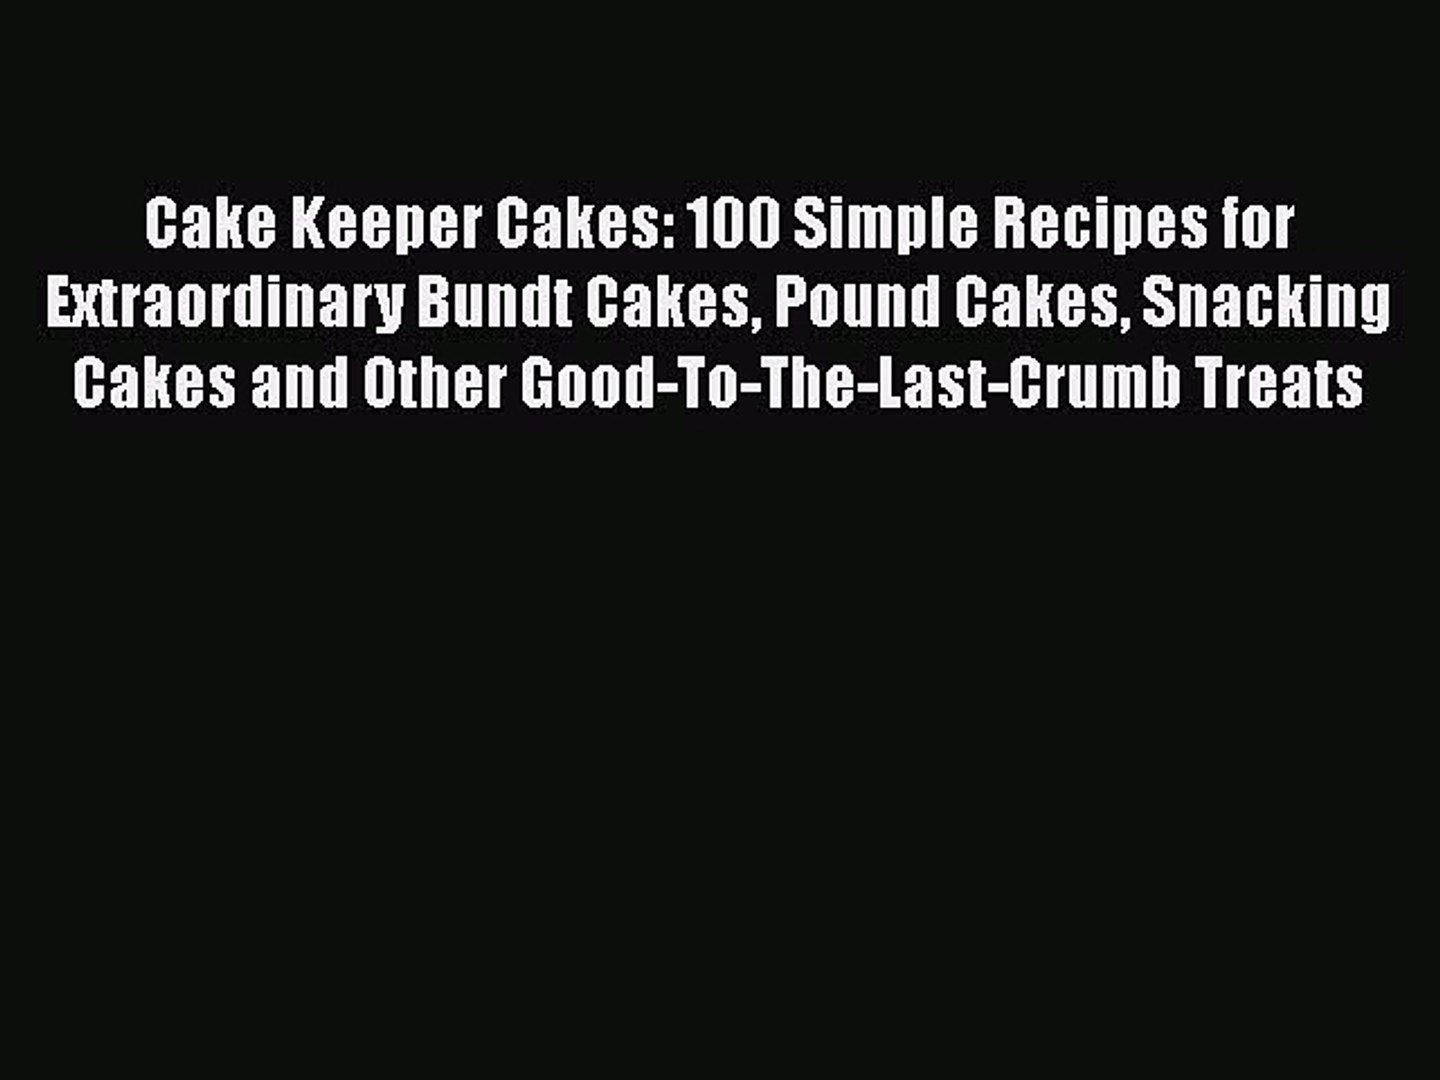 Read Cake Keeper Cakes: 100 Simple Recipes for Extraordinary Bundt Cakes Pound Cakes Snacking